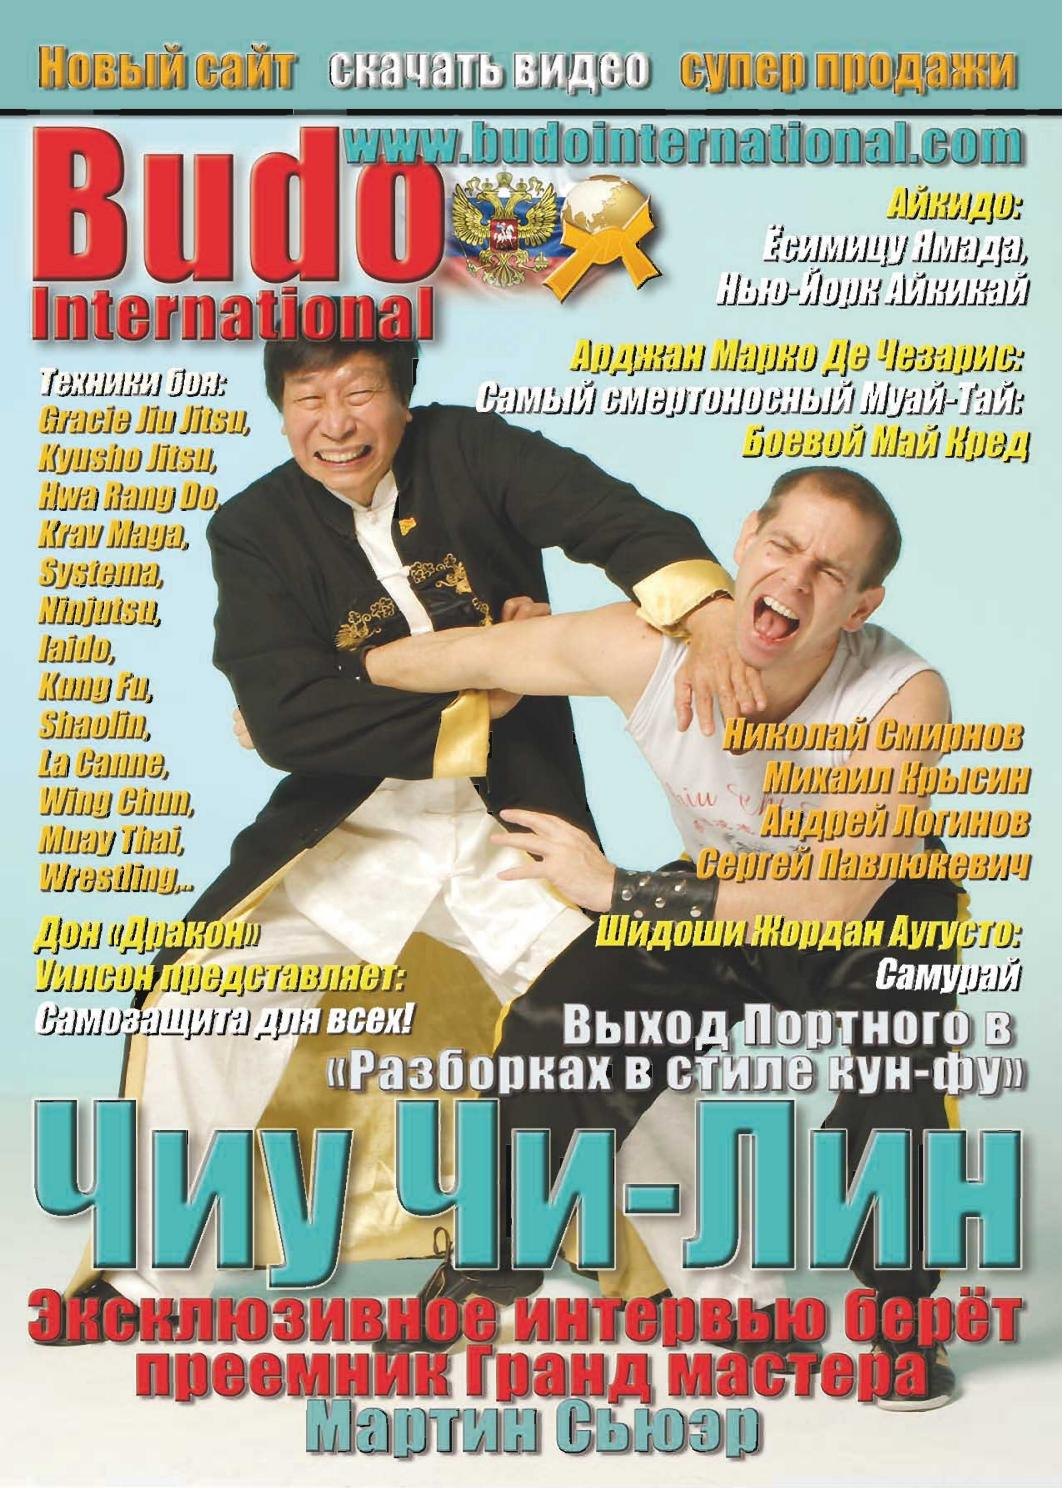 Budo International №2